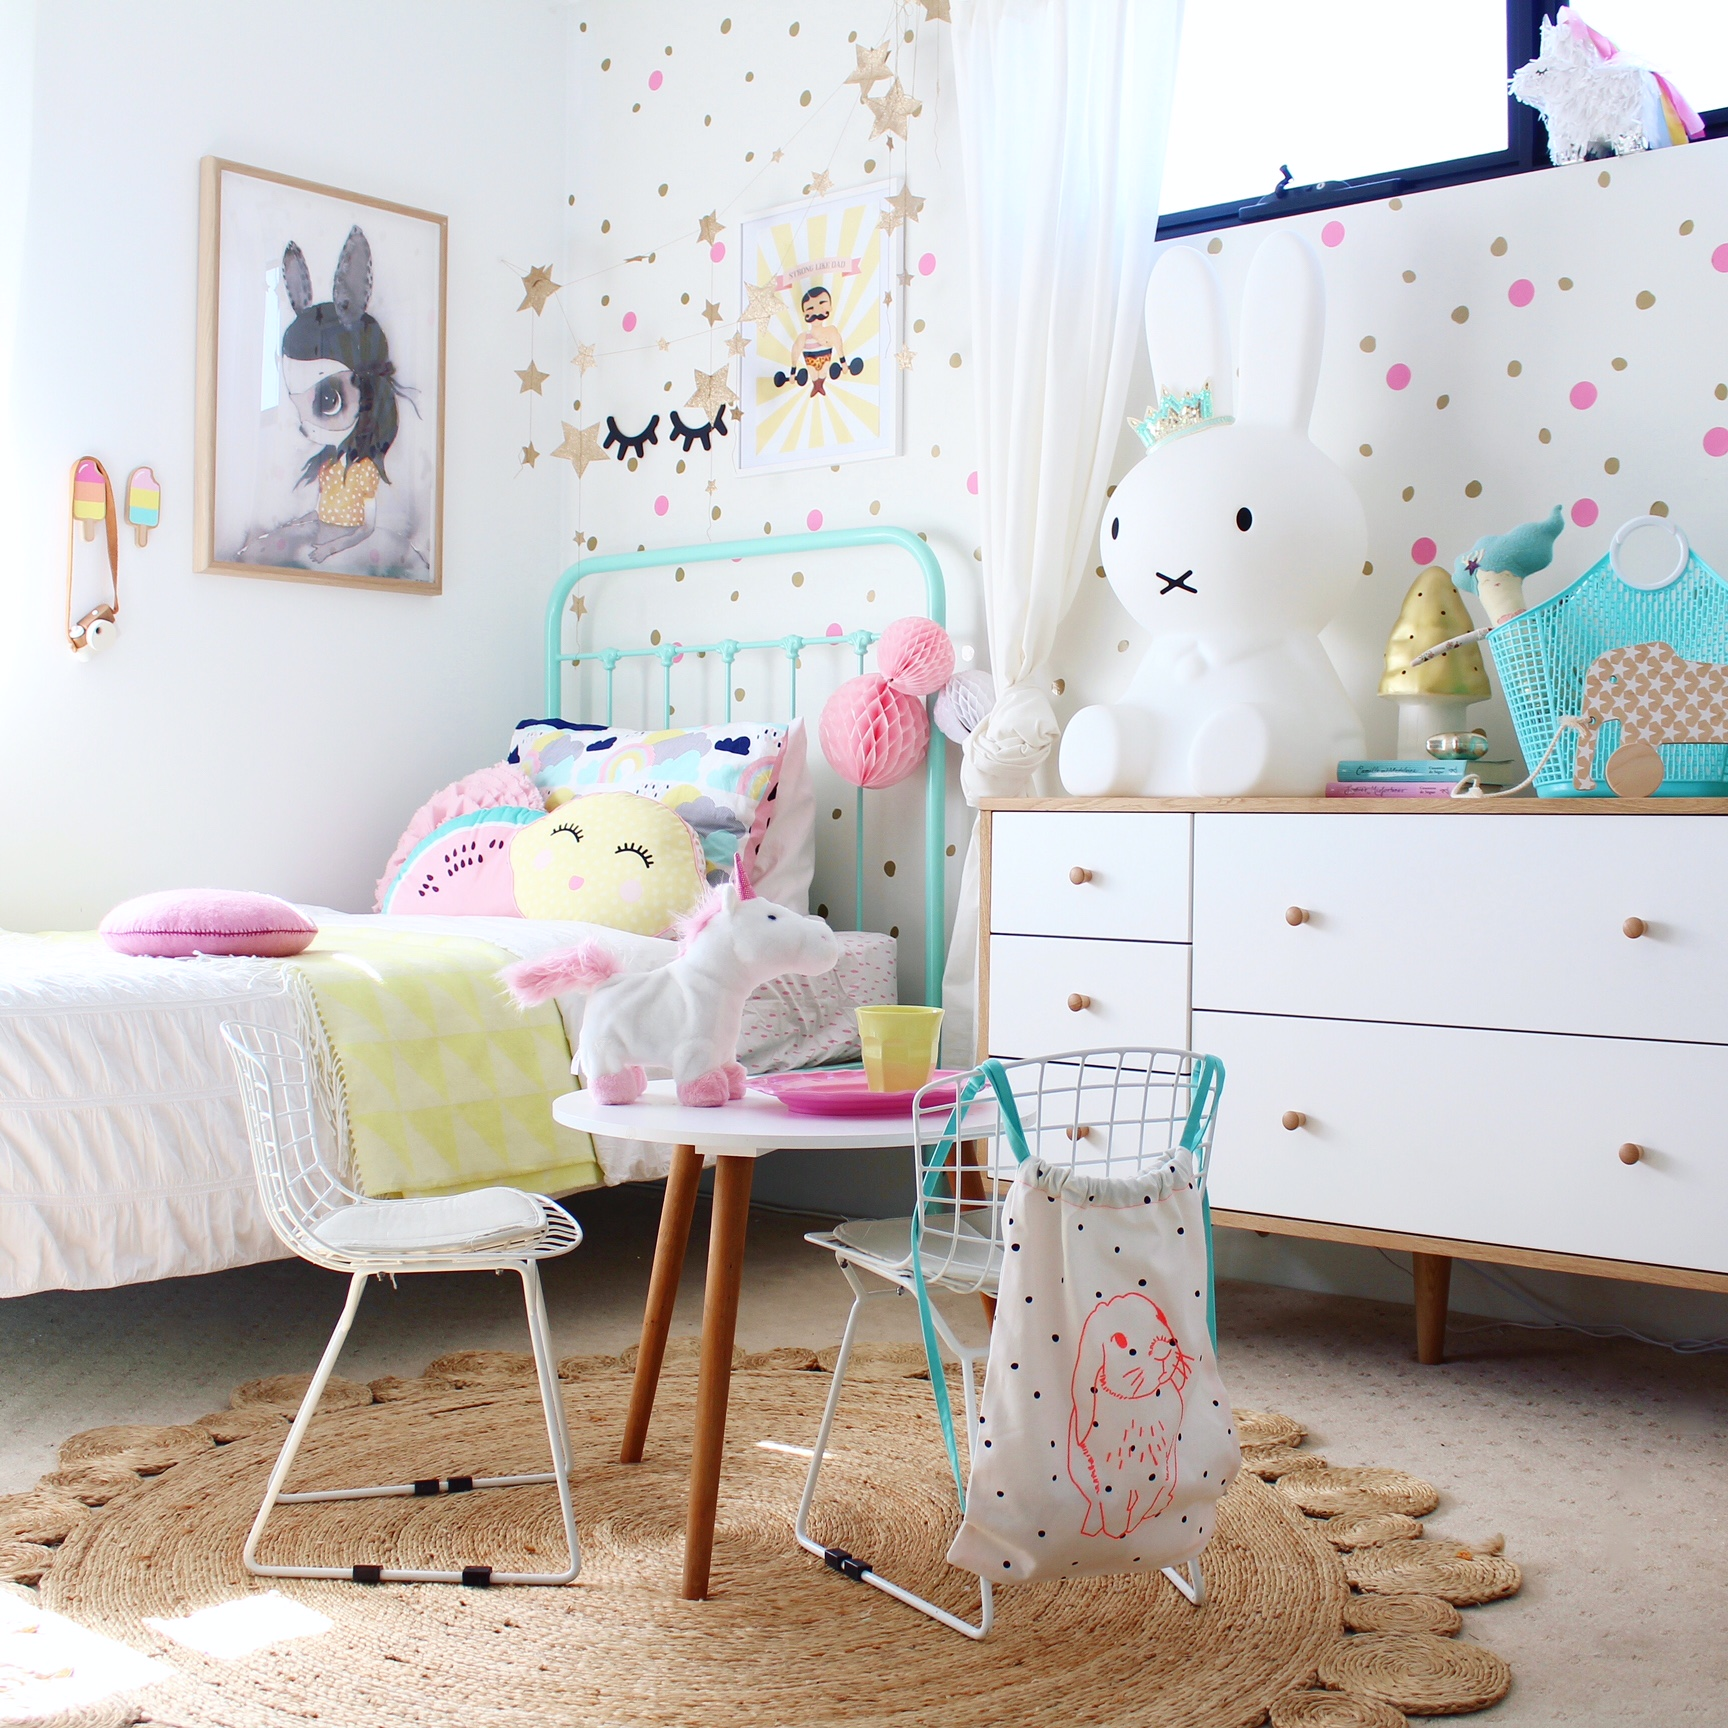 Colorful Kids Room Design: Children's Decor And Interior Design